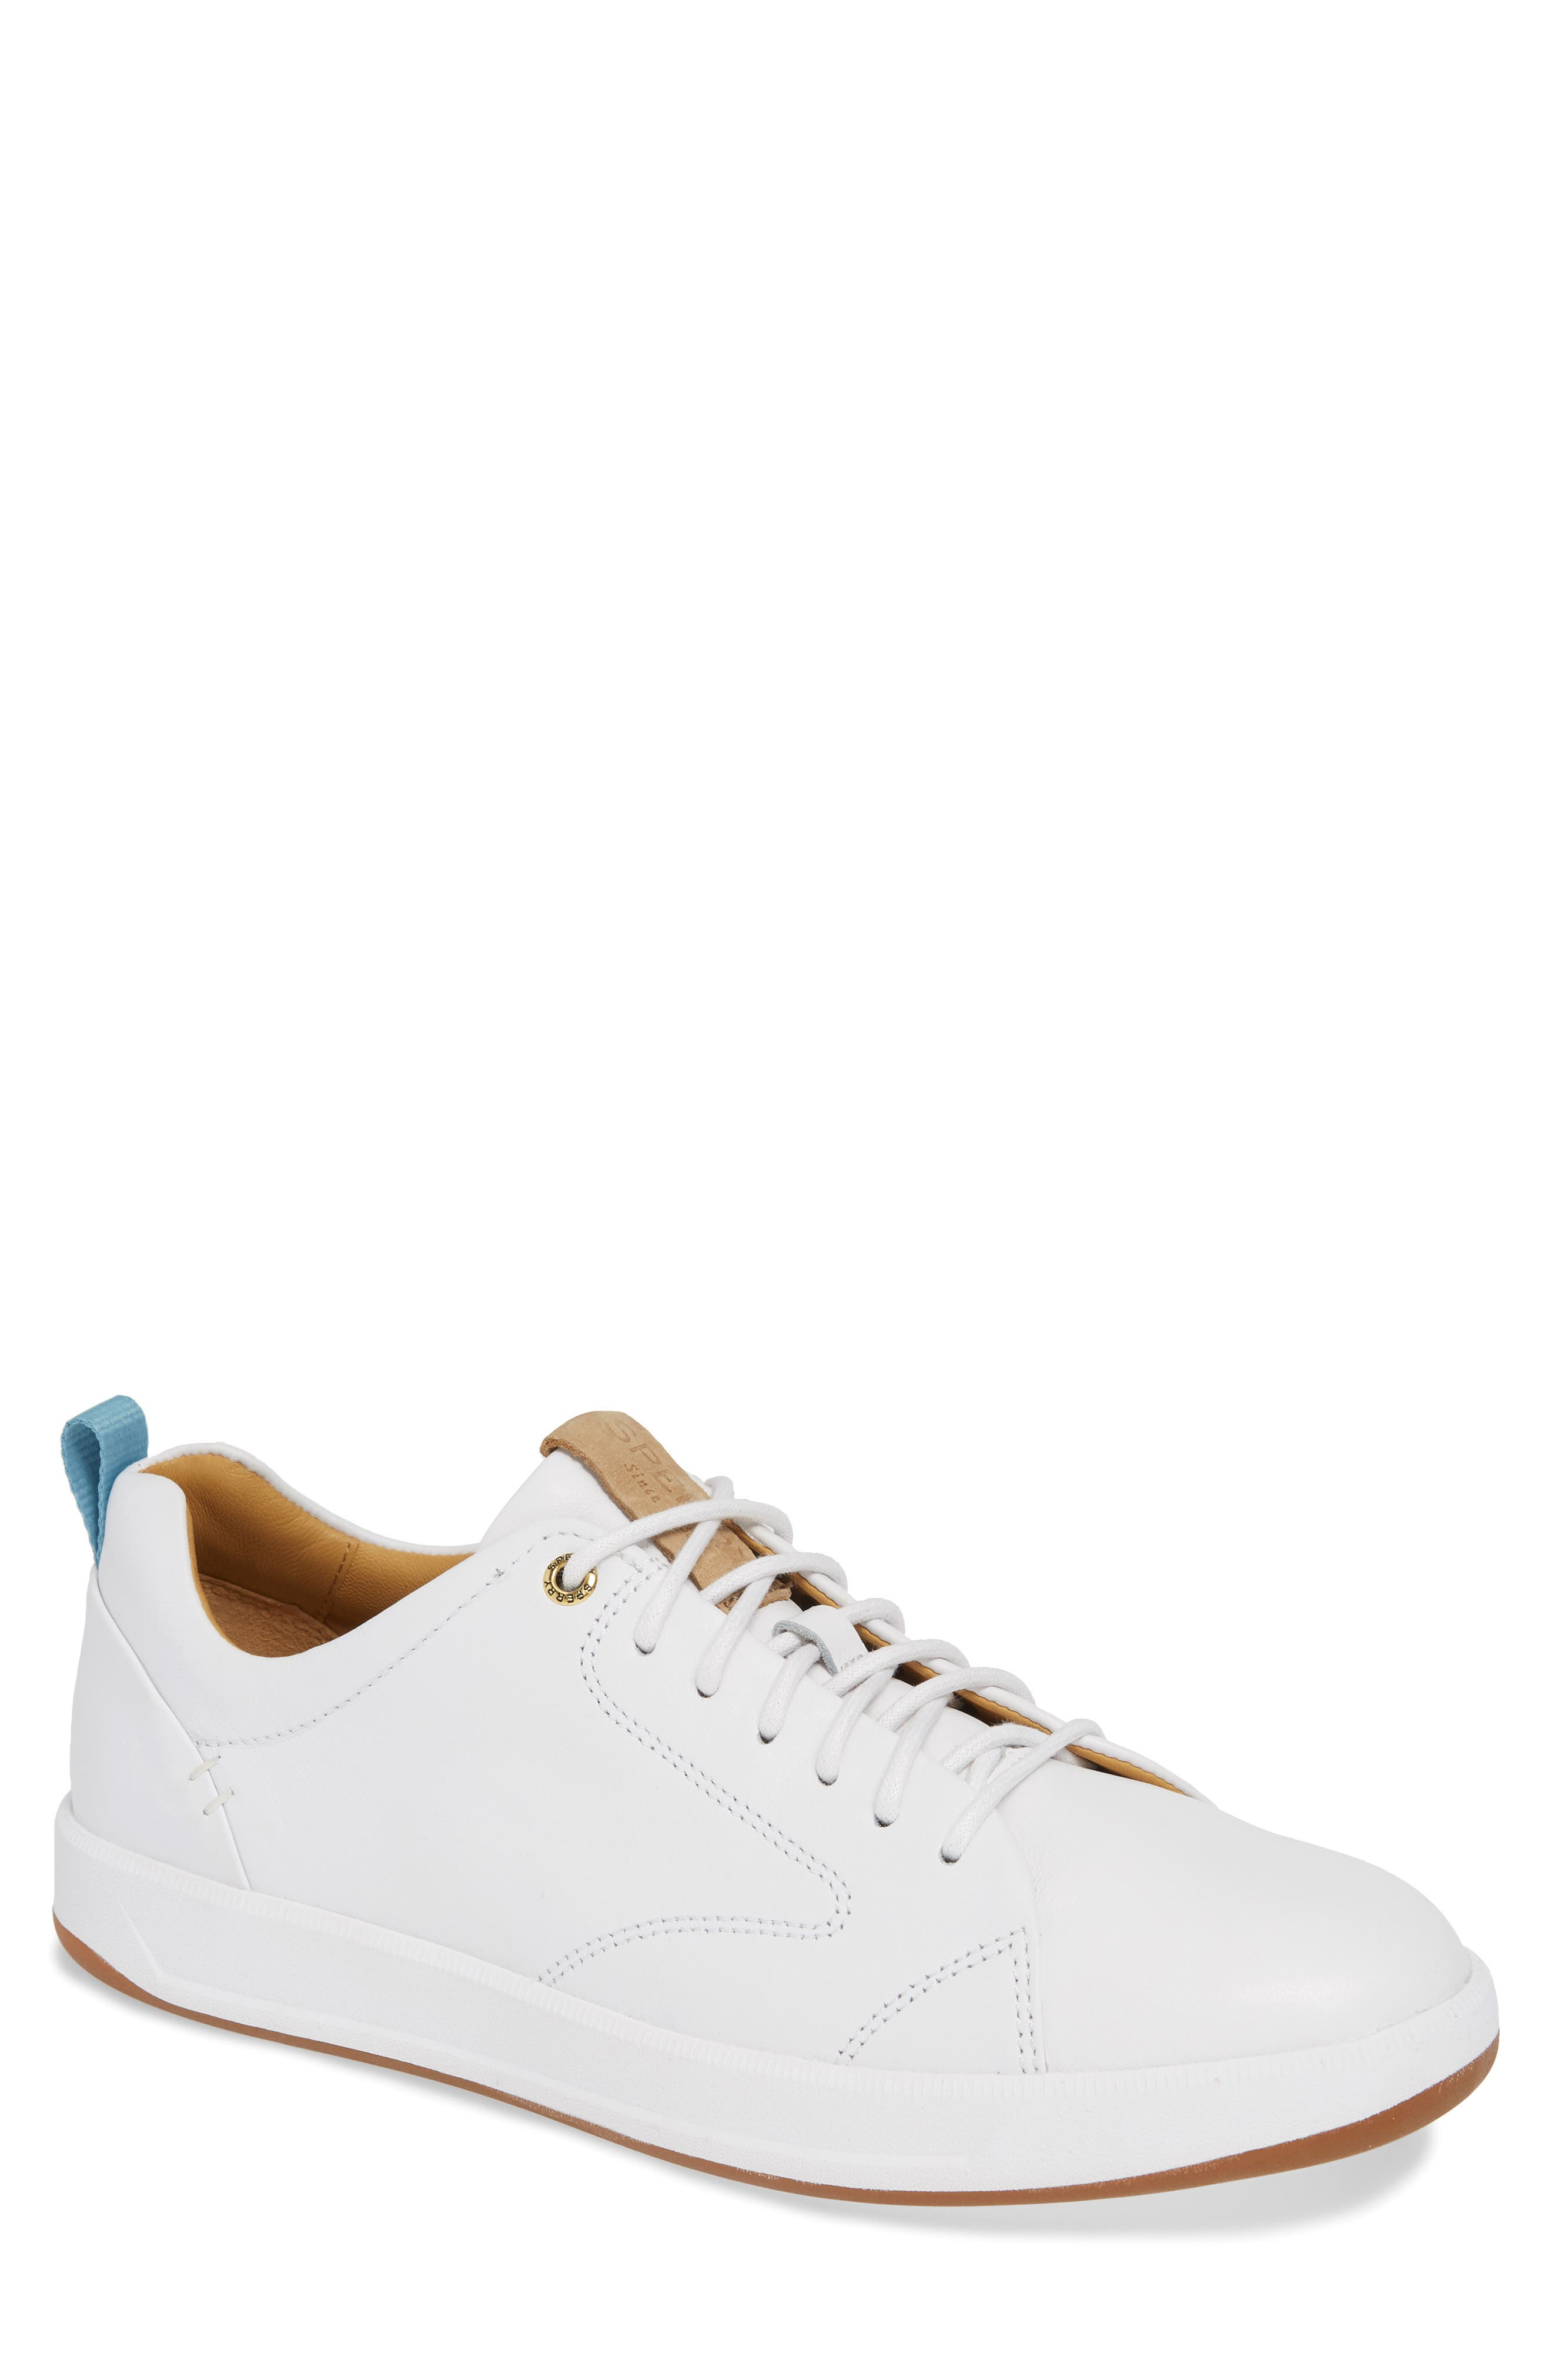 SPERRY Gold Cup Richfield LTT Sneaker, Main, color, WHITE